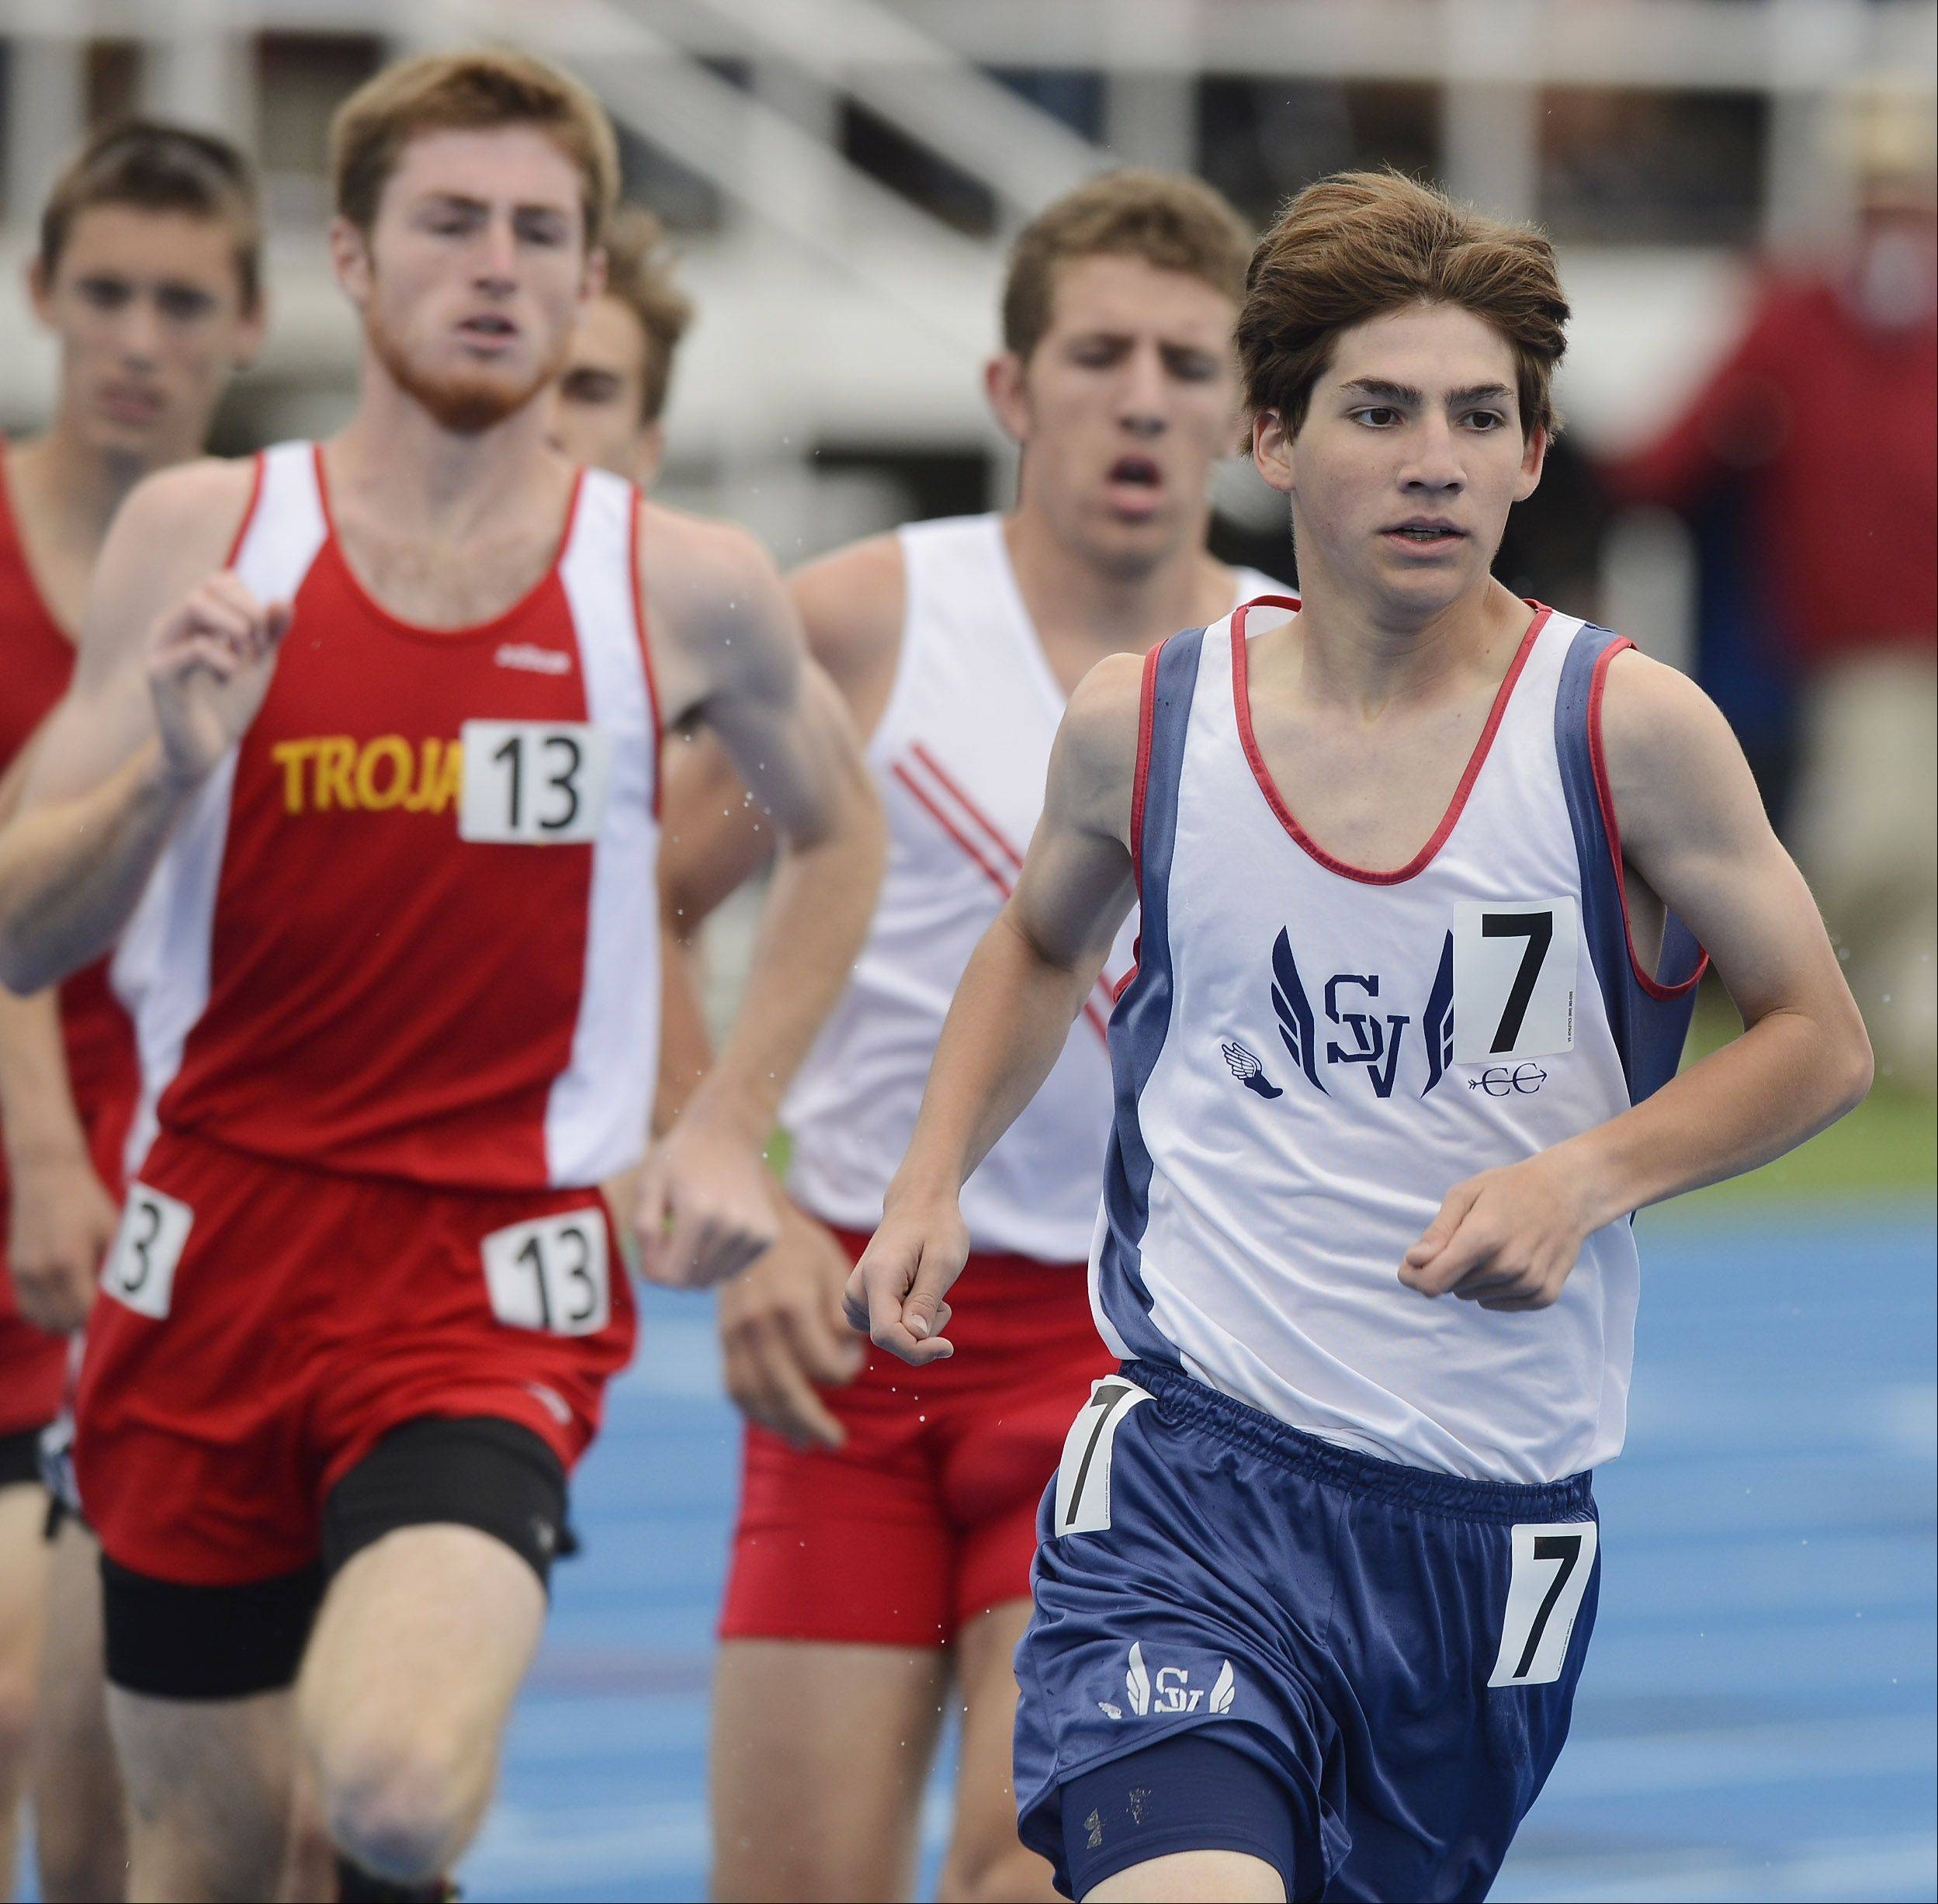 St. Viator's Nick Brey, right, competes in the Class 2A 3,200-meter run during the boys state track finals in Charleston Saturday.